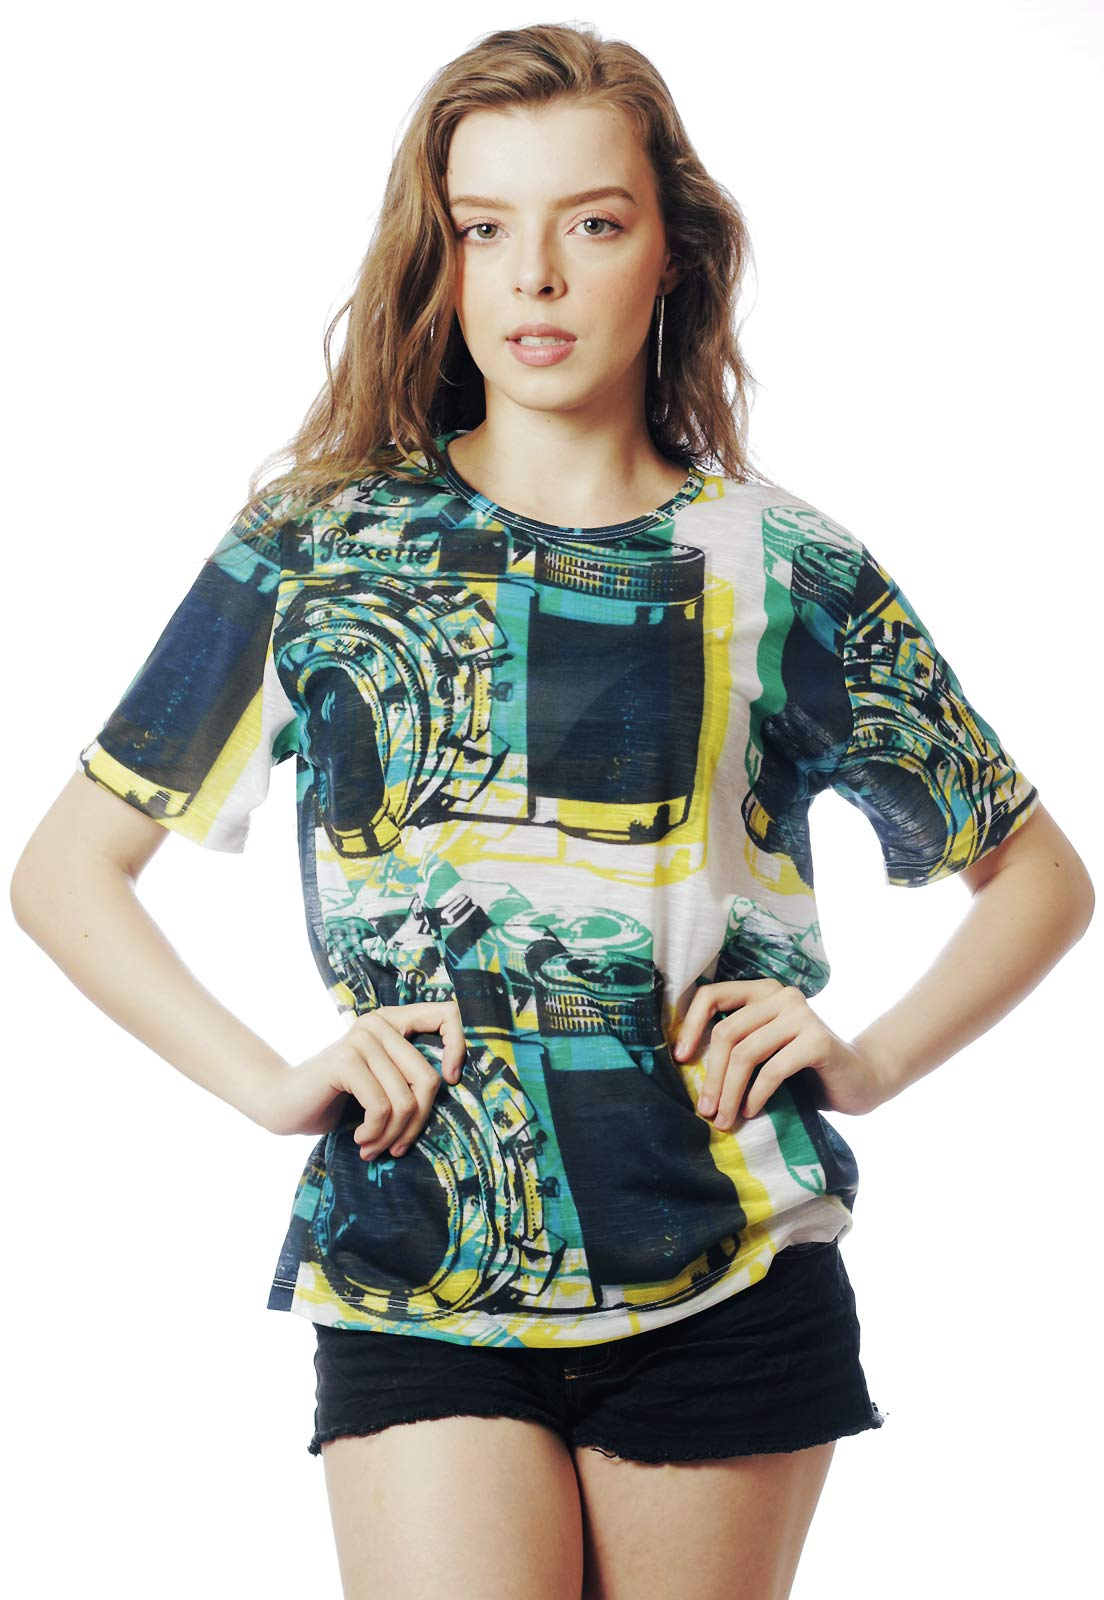 CAMISETA ESTAMPADA FULL PRINT UNISSEX VINTAGE CAMERA VERDE